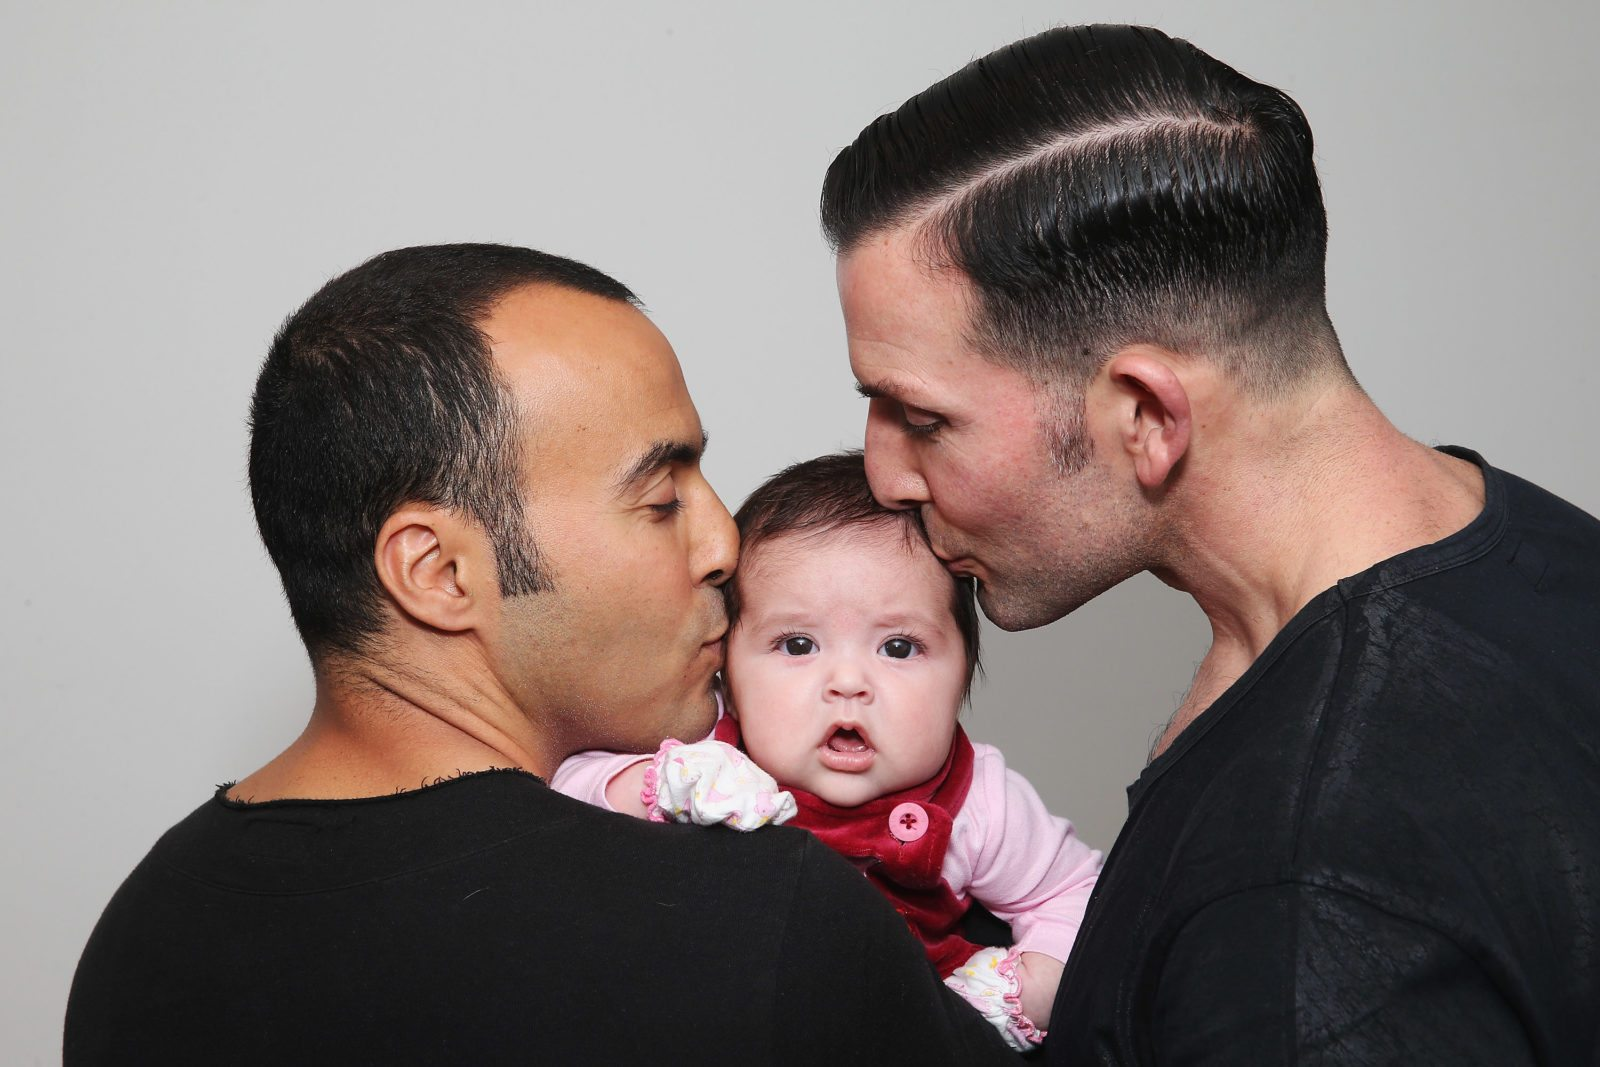 "SYDNEY, AUSTRALIA - MAY 30: (L-R) Sydney couple, Faycal Dow, aged 38, daughter Myla Dow, aged 2 months, and Hunter Dow, aged 44, pose during a portrait session on May 30, 2015 in Sydney, Australia. Faycal and Hunter were legally married in France last year and had their first child Myla this year and are supporters of same-sex marriage. "" For the sake of our daughter more than anything, it is important that our marriage is recognised as valid in Australia, the country we live in and hope to bring our beautiful daughter up in"", said Hunter. The marriage equality debate in Australia has reignited on the back of Ireland's referendum legalising same-sex marriage last week. Recent polls suggest public support for gay marriage in Australia is at an all-time high of 72%. (Photo by Don Arnold/Getty Images)"